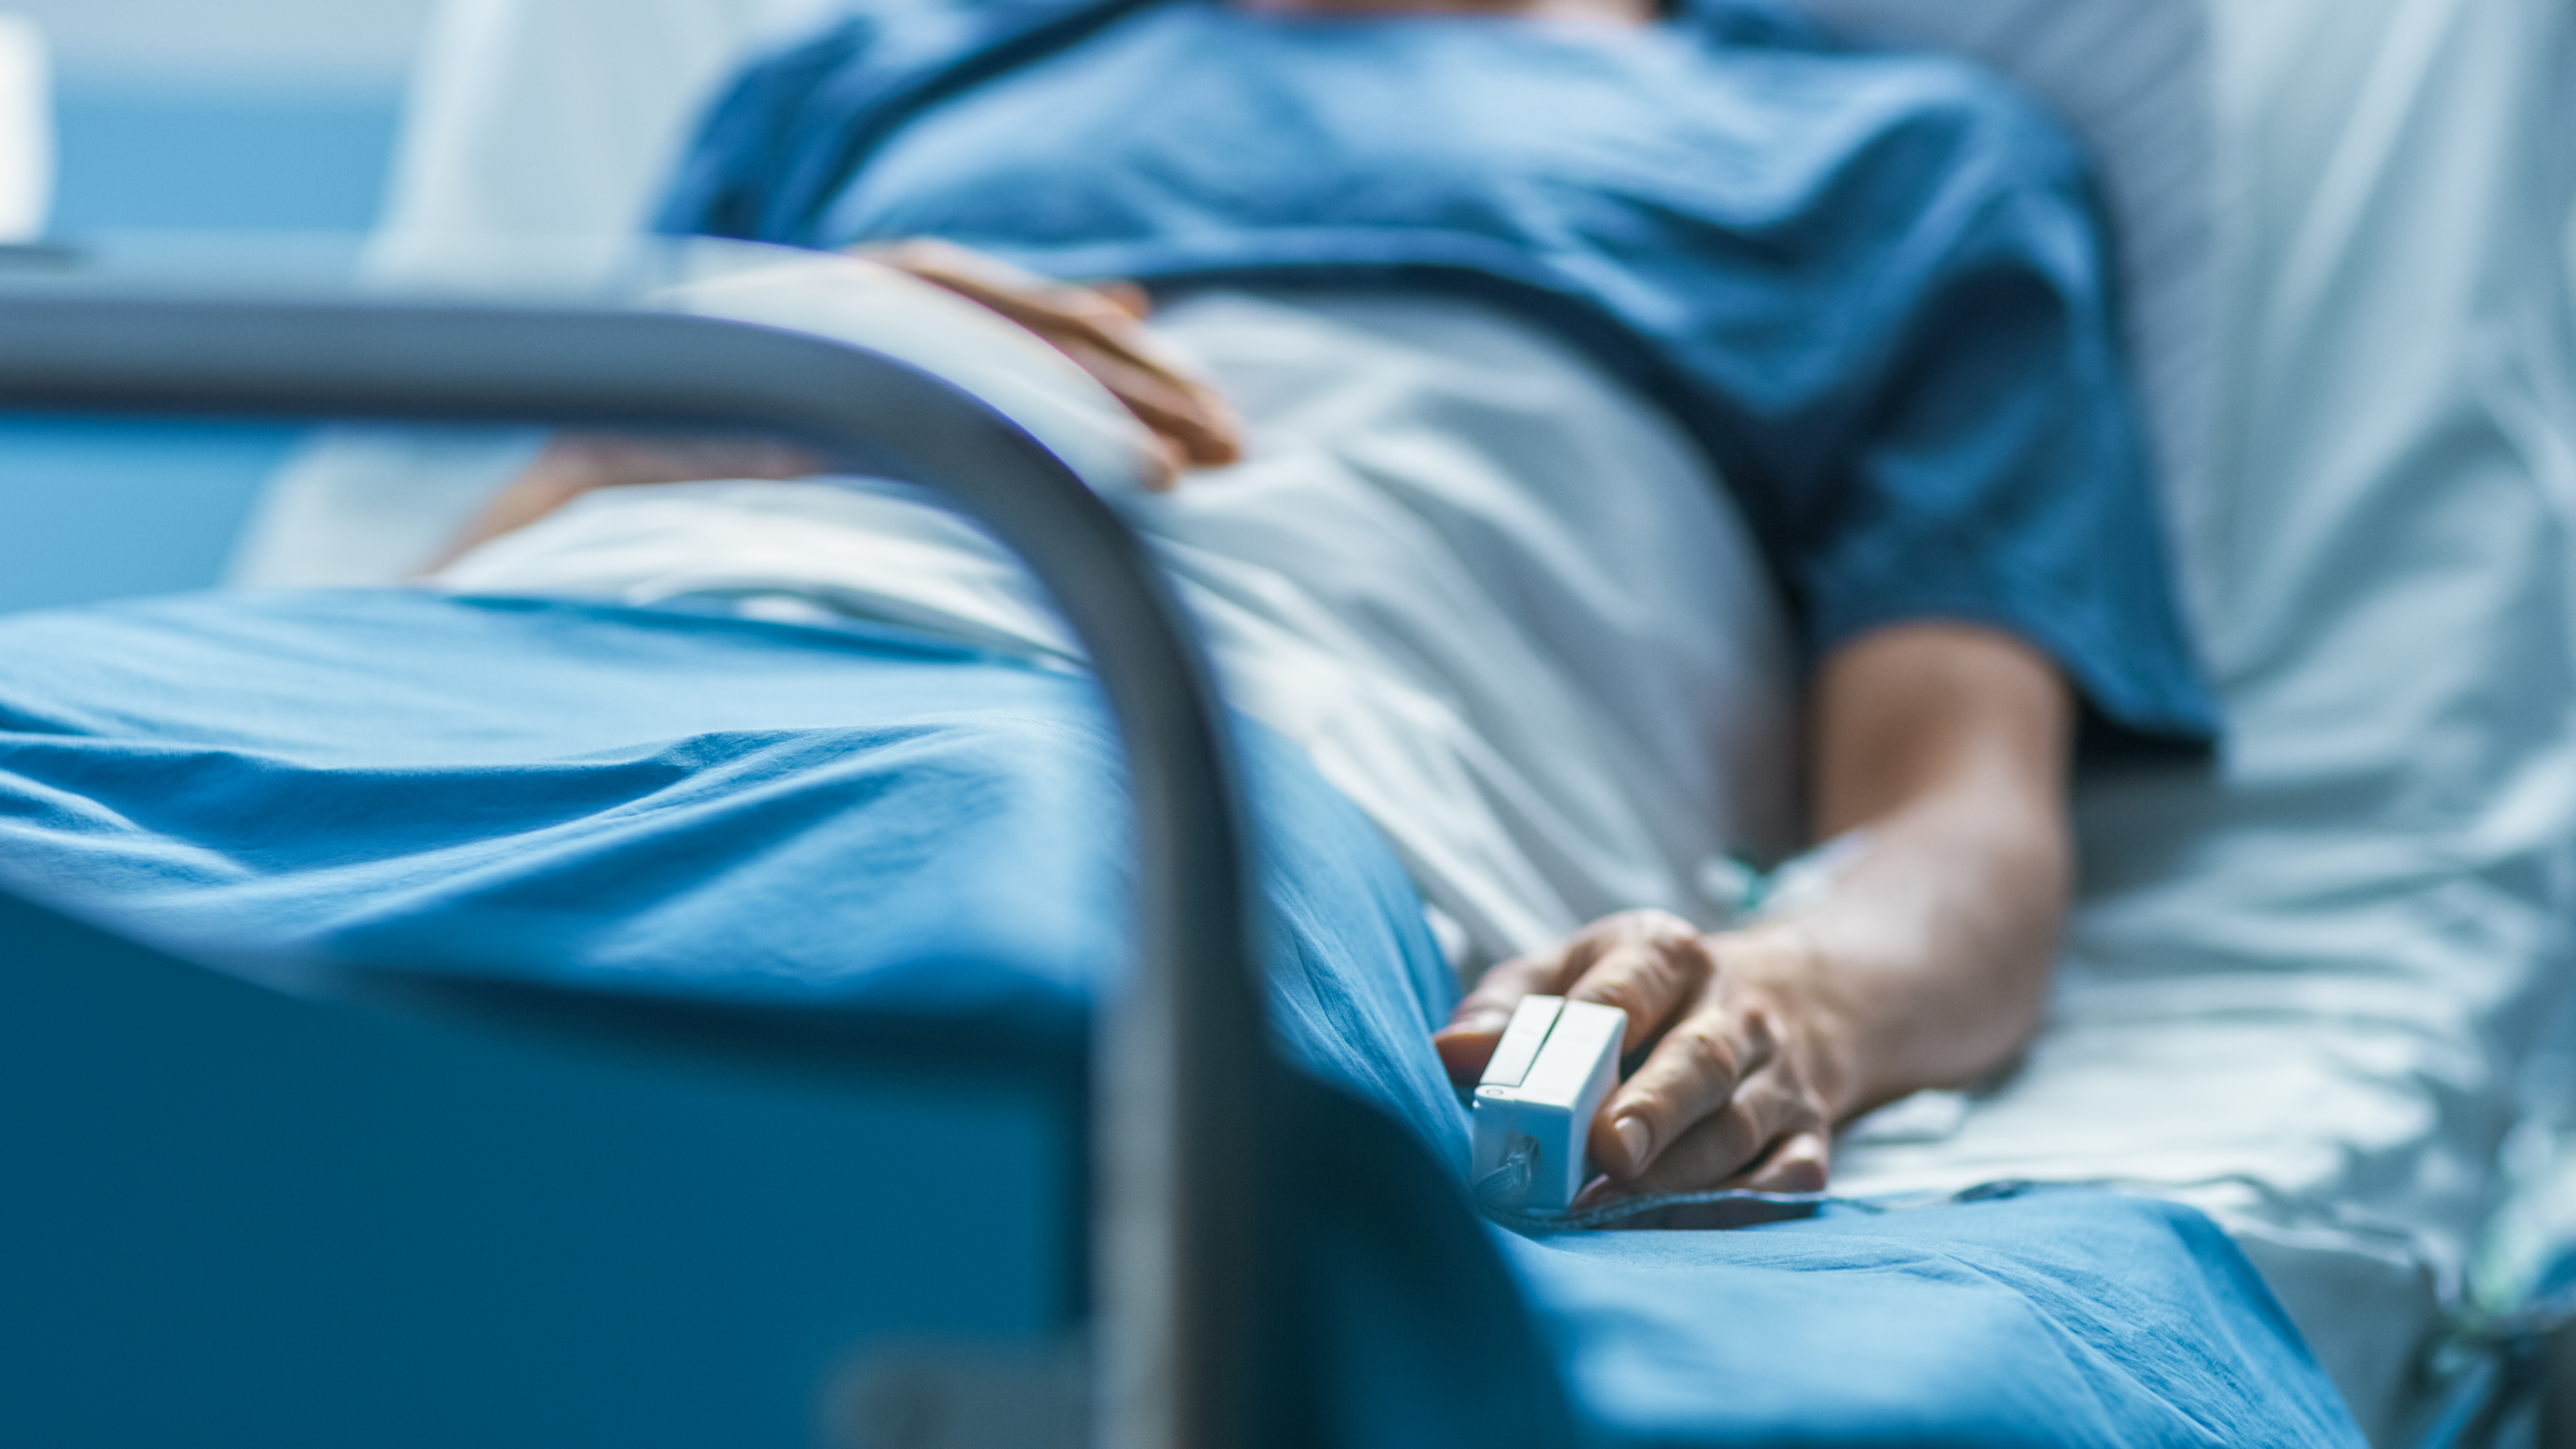 sick patient in hospital bed with heart rate monitor